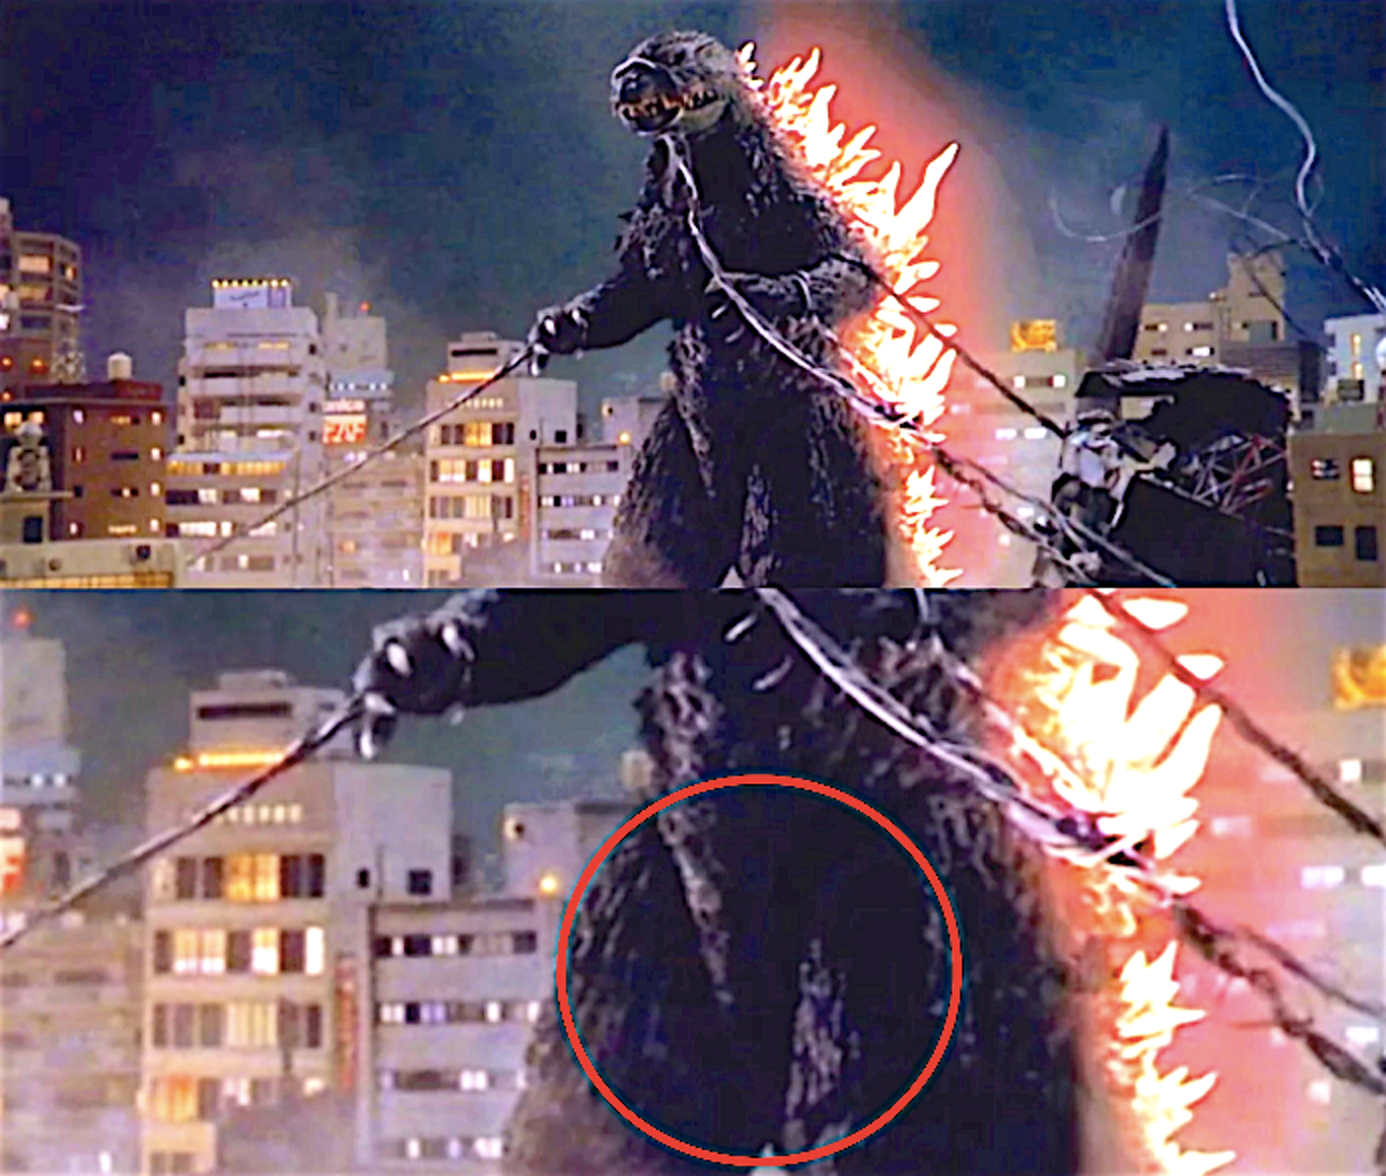 Do you see it? (From: 'Godzilla 2000')